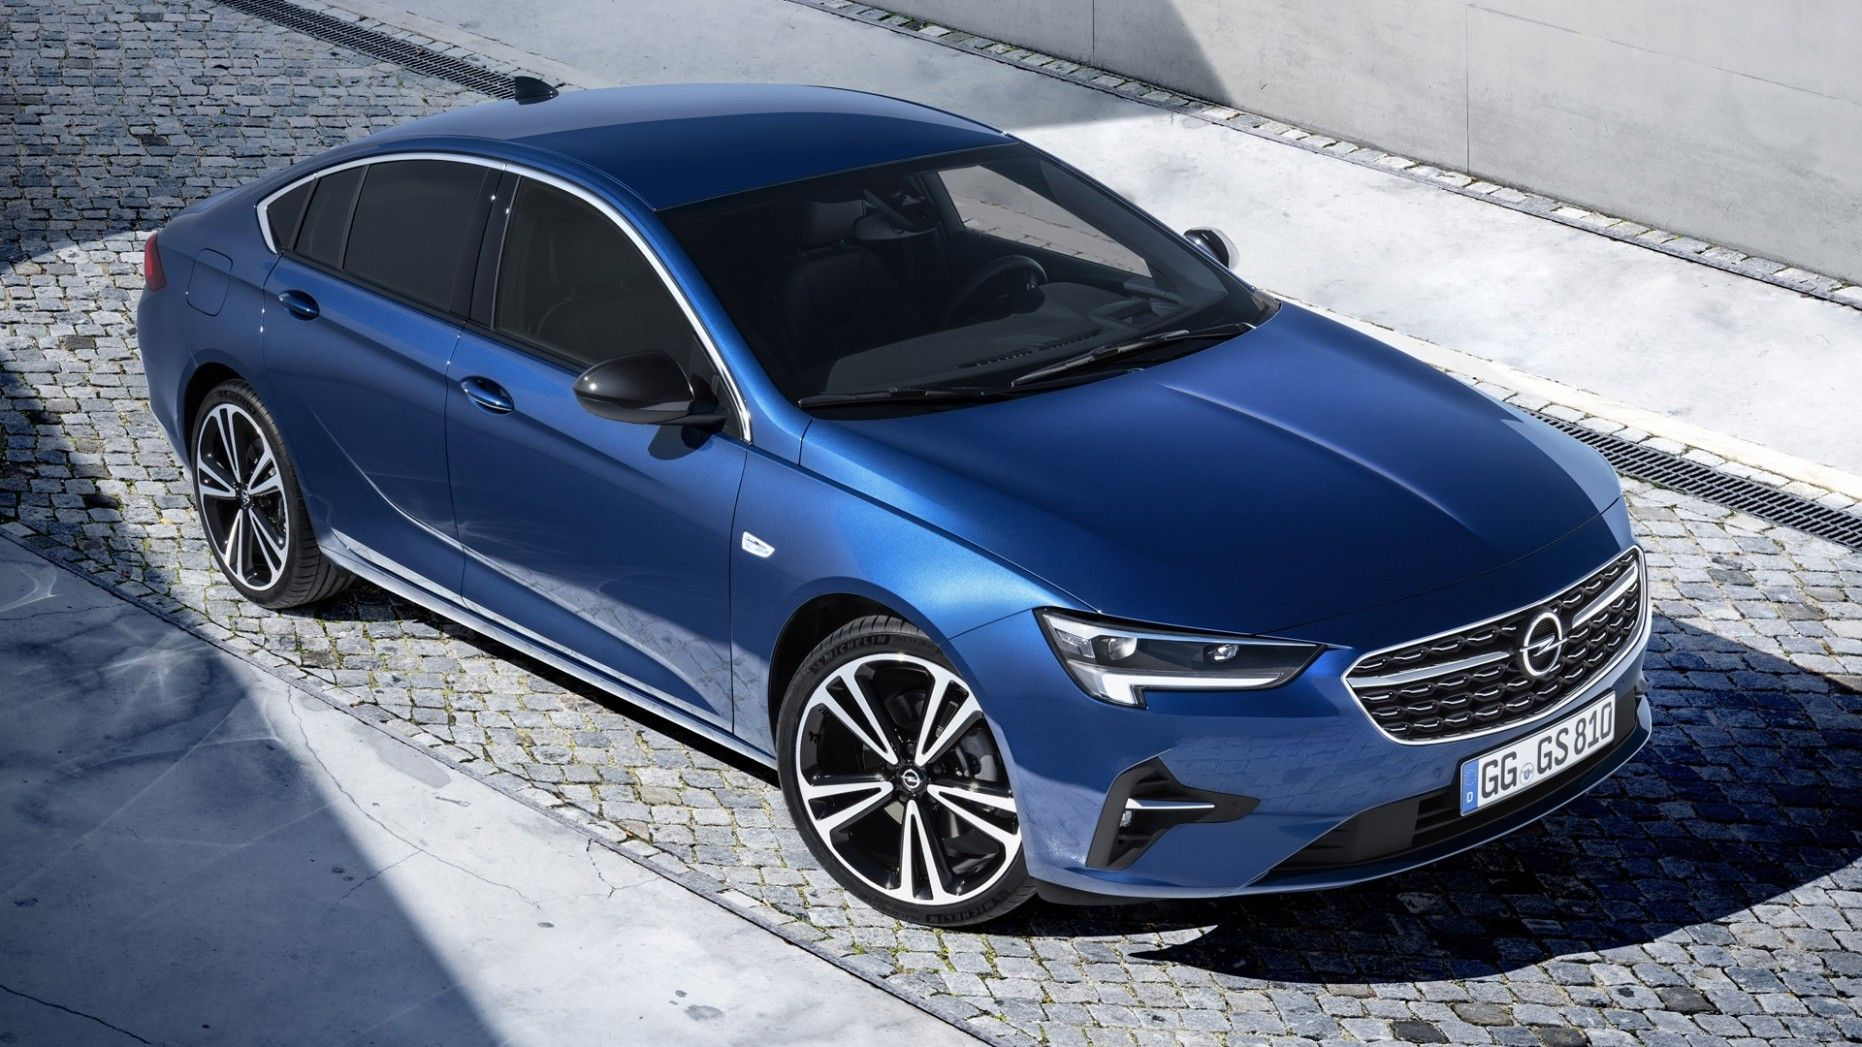 2021 Buick Regal Gs Coupe First Drive